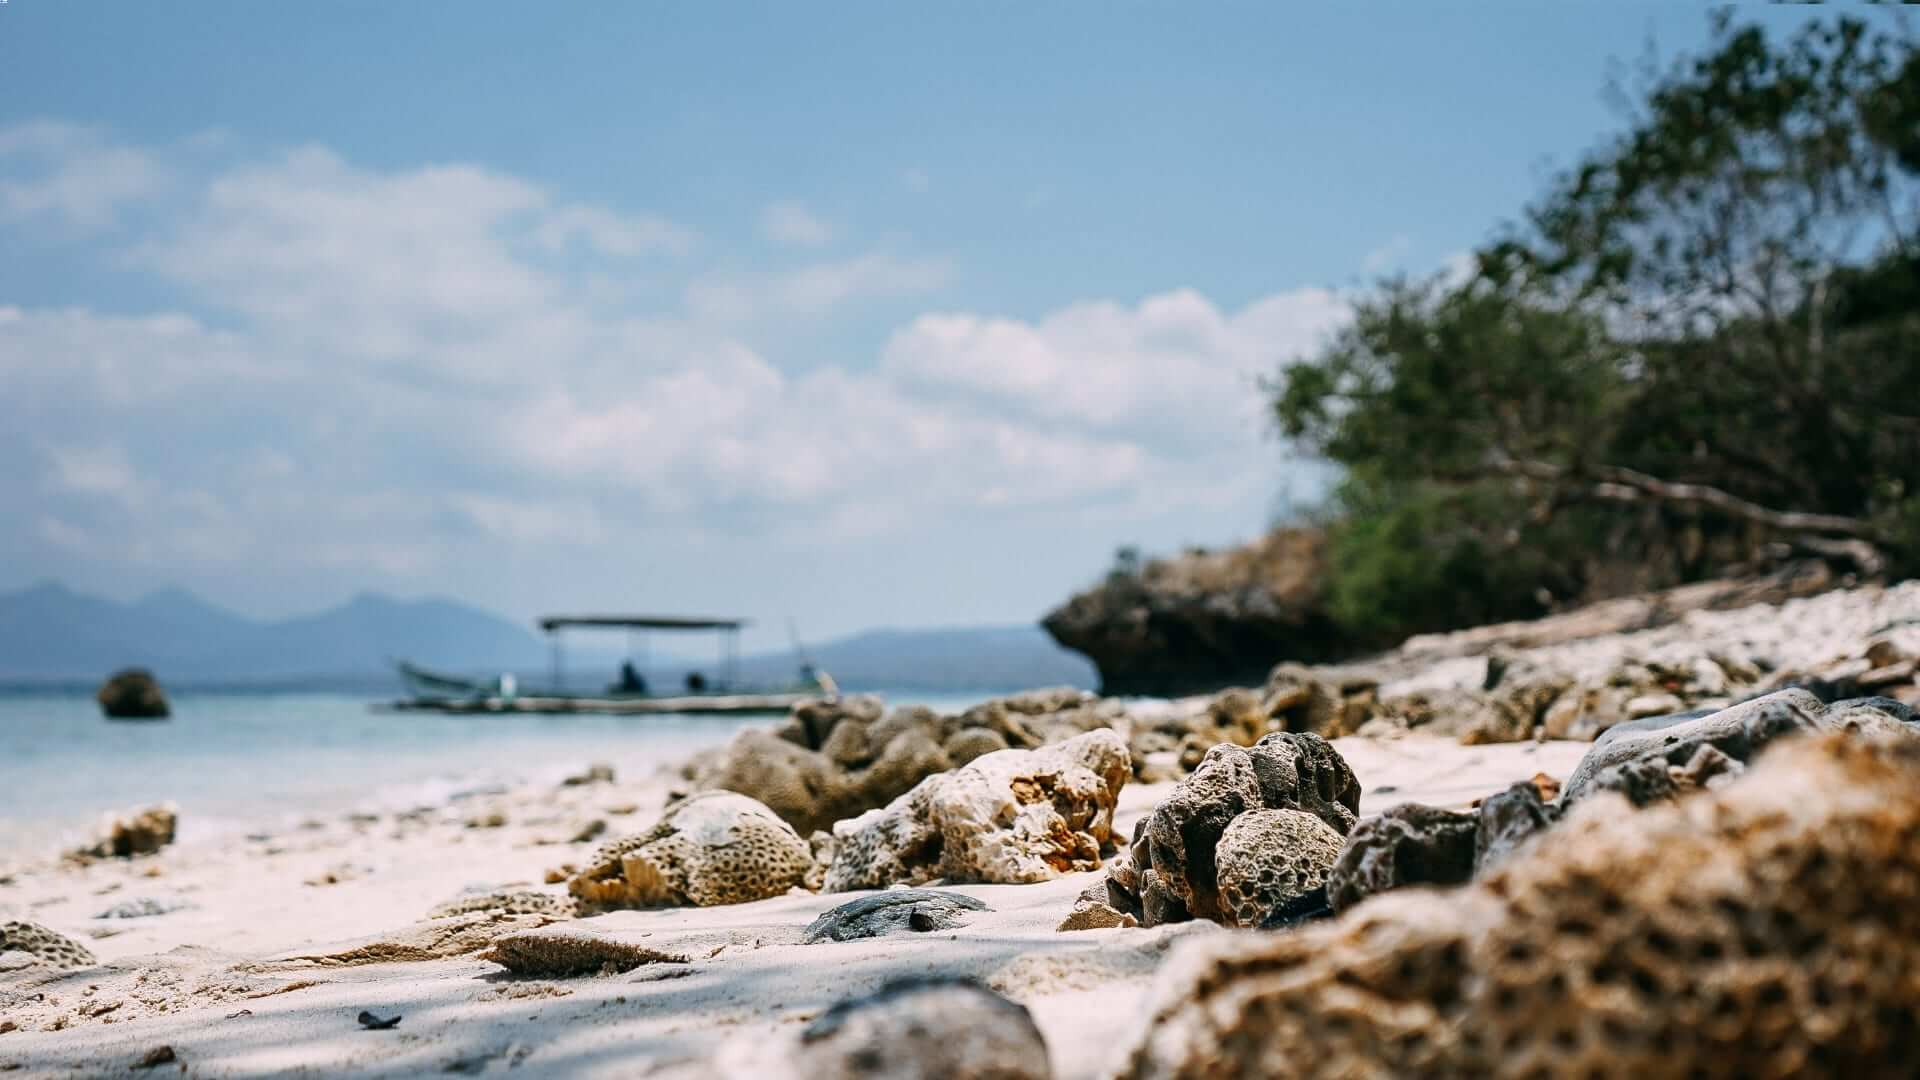 A white beach with small rocks and a boat in Indonesia.